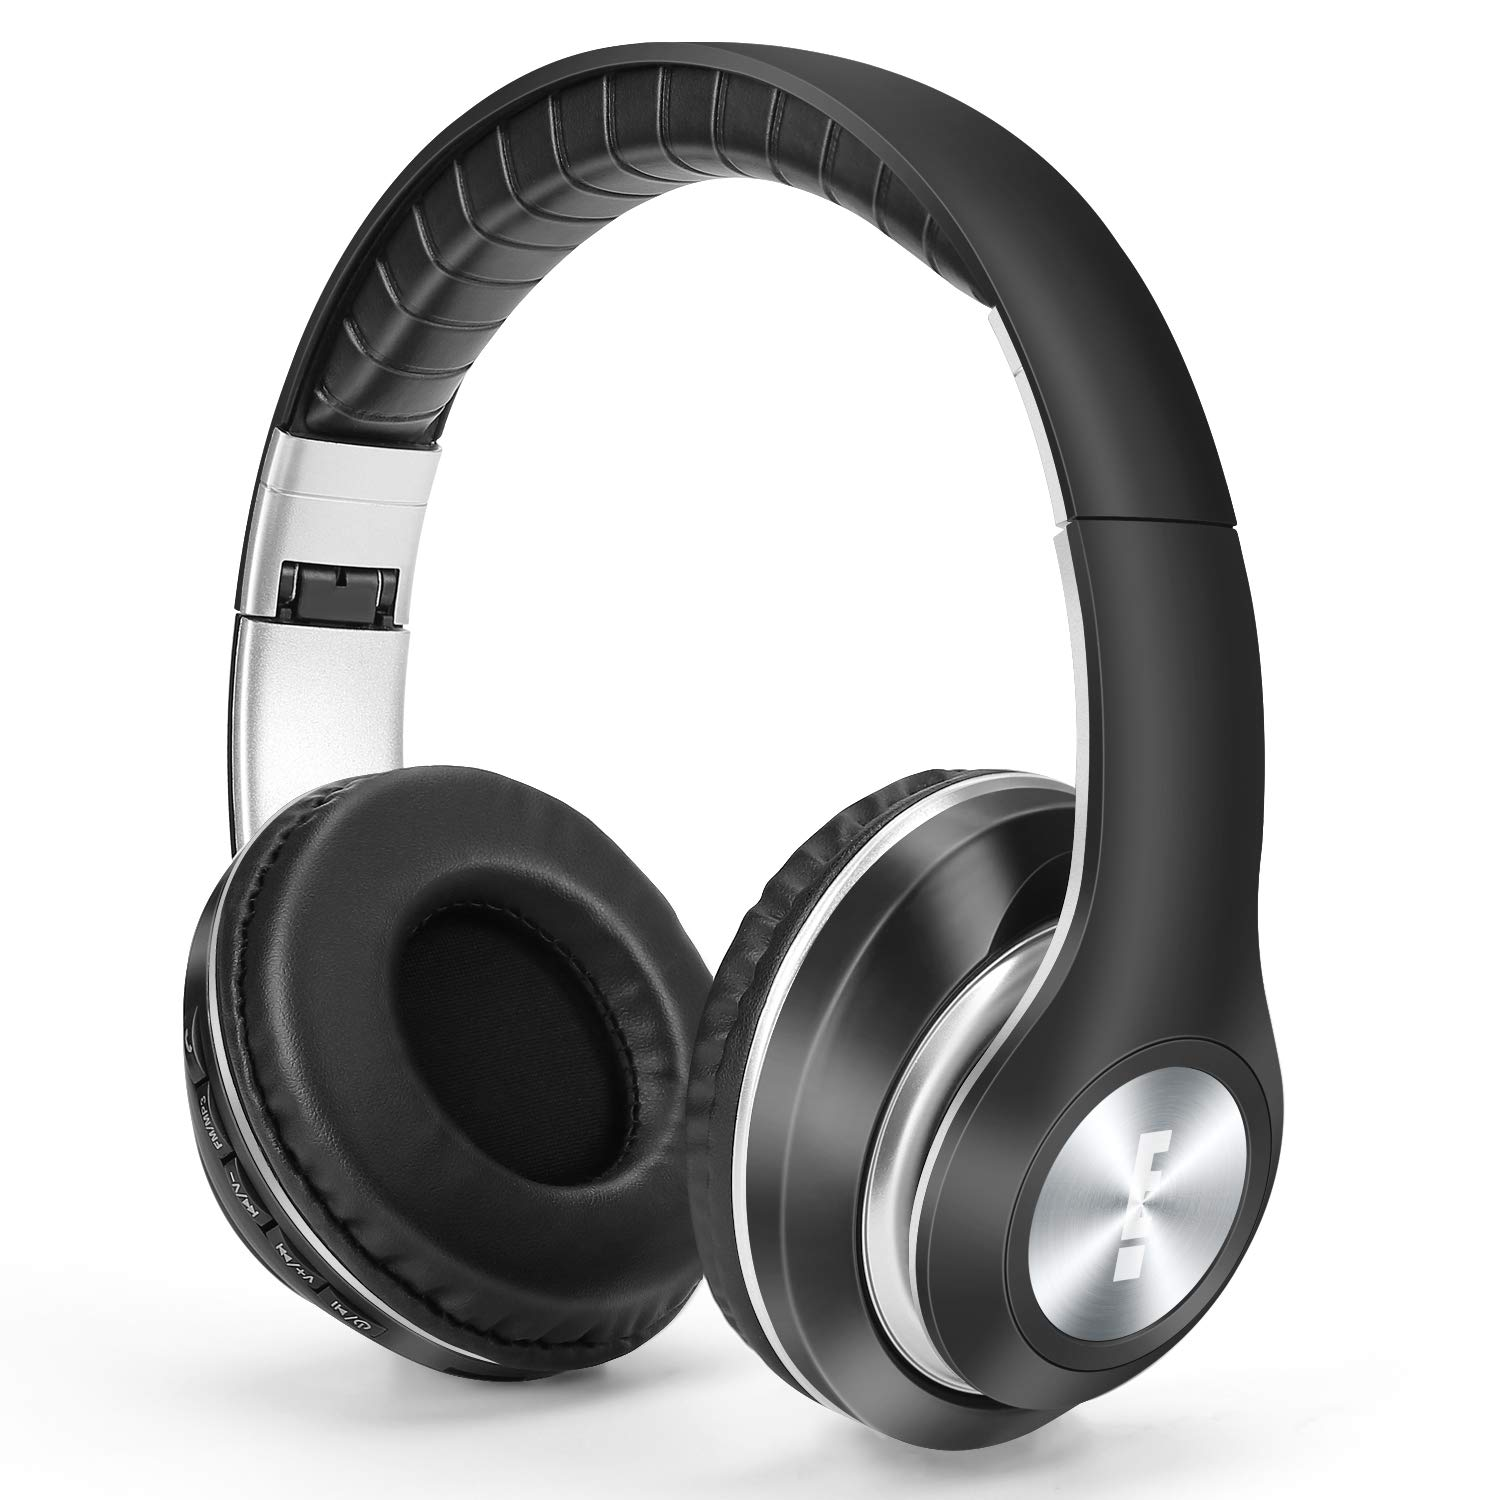 Wireless Bluetooth Headphones Over Ear, 3D Hi-Fi Stereo Wireless Headset, Foldable, Soft Memory-Protein Earmuffs, w/Built-in Mic Wired Mode PC/Cell Phones, with MP3 Mode FM TF